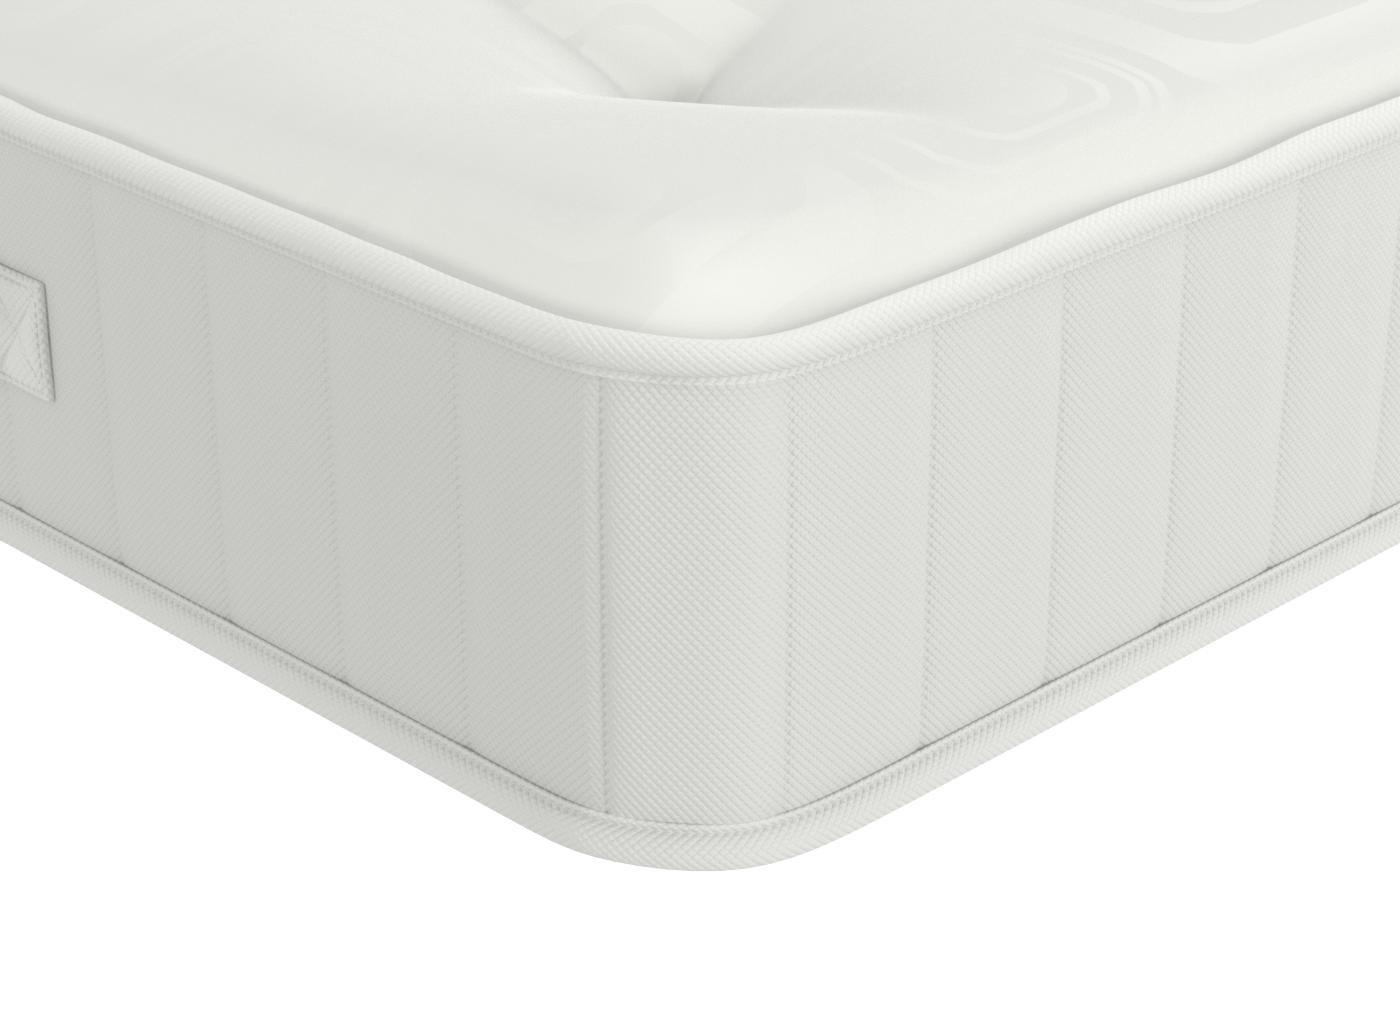 Regatta Pocket Sprung Mattress - Firm